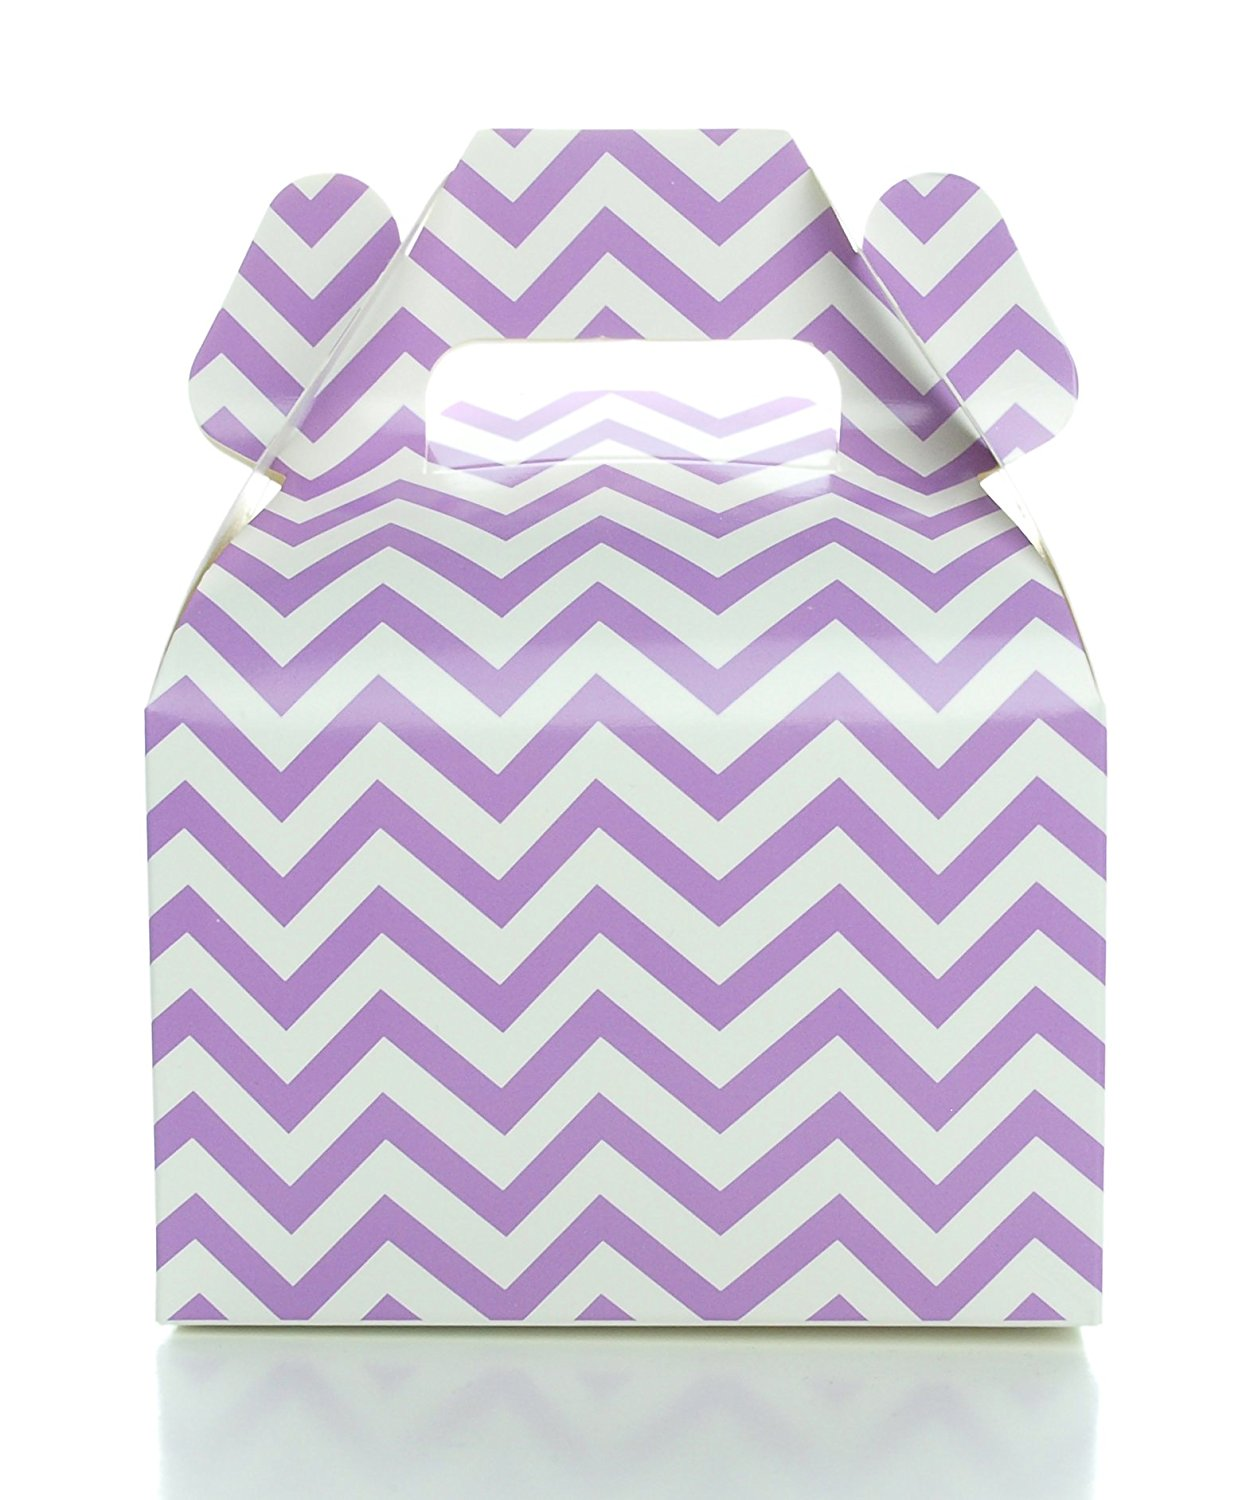 Purple Lavender Wedding Favor Boxes, Light Purple Chevron Zig-Zag Gable Box (12 Pack) - Mini Square Gift Boxes, Purple Party Supplies - Candy Box, Gift Box, Gable Boxes, Favor Box, or Treat Boxes